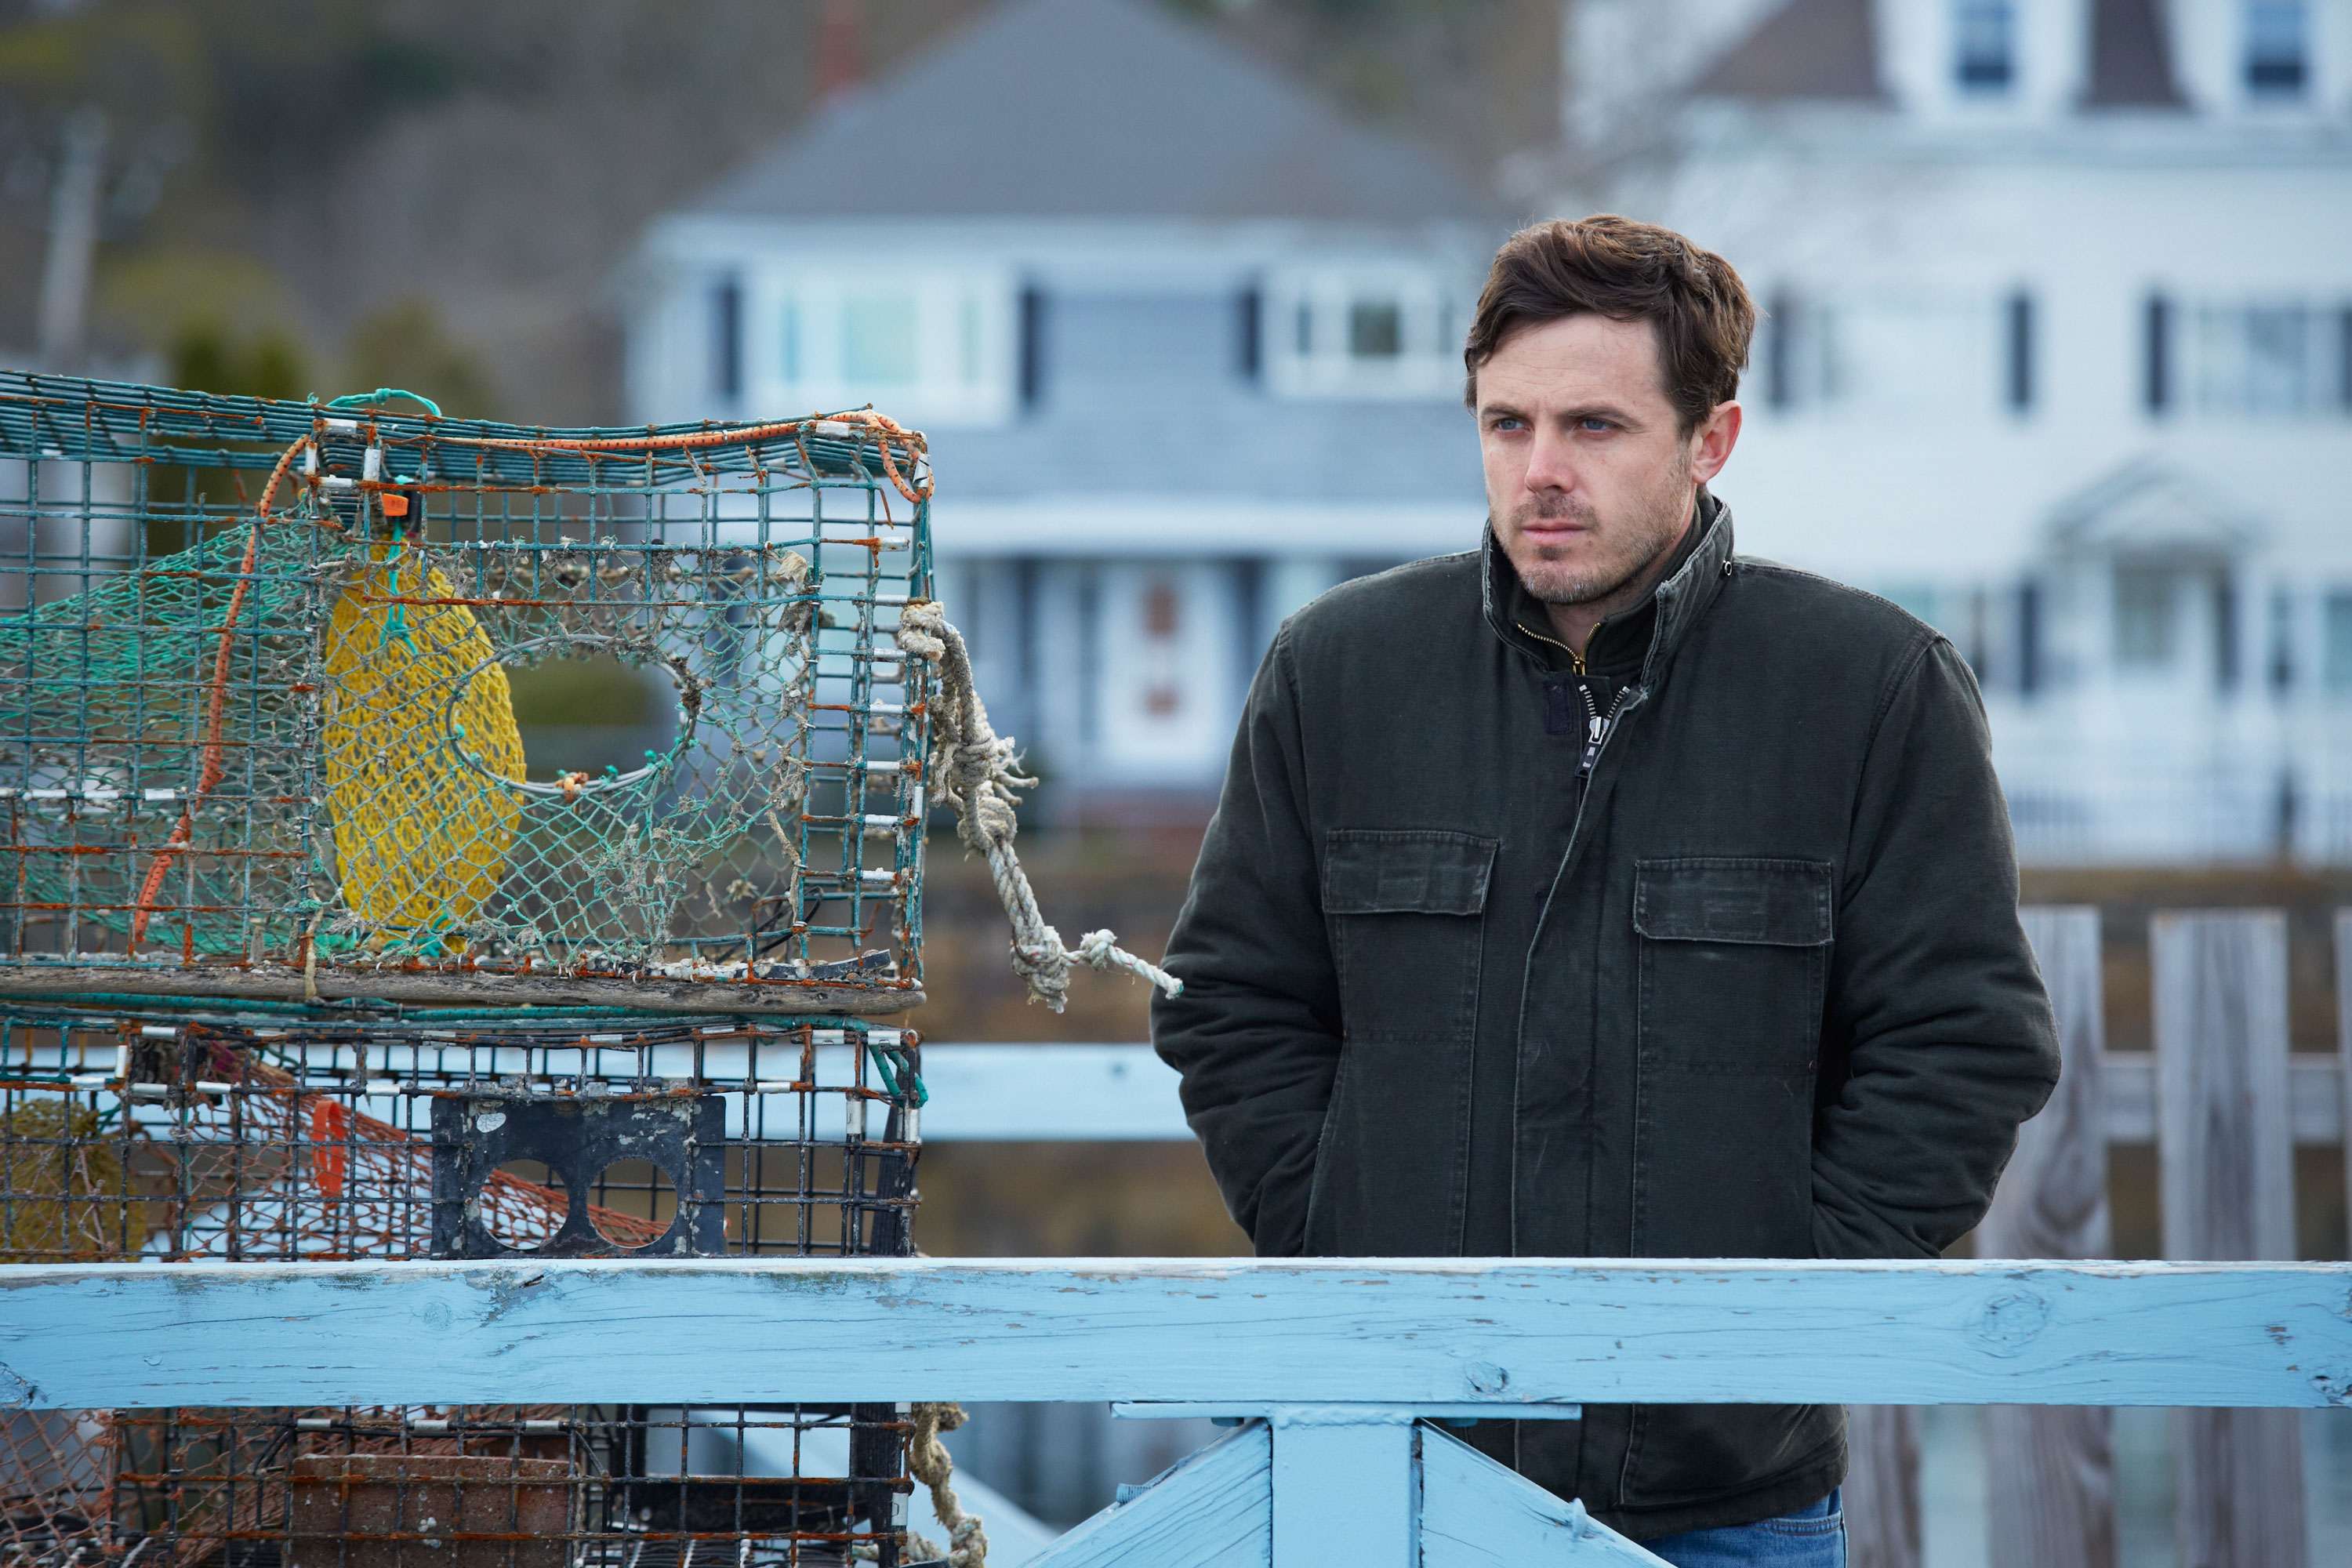 'Manchester by the Sea' Review: Casey Affleck Drama Is One of Year's Best Movies